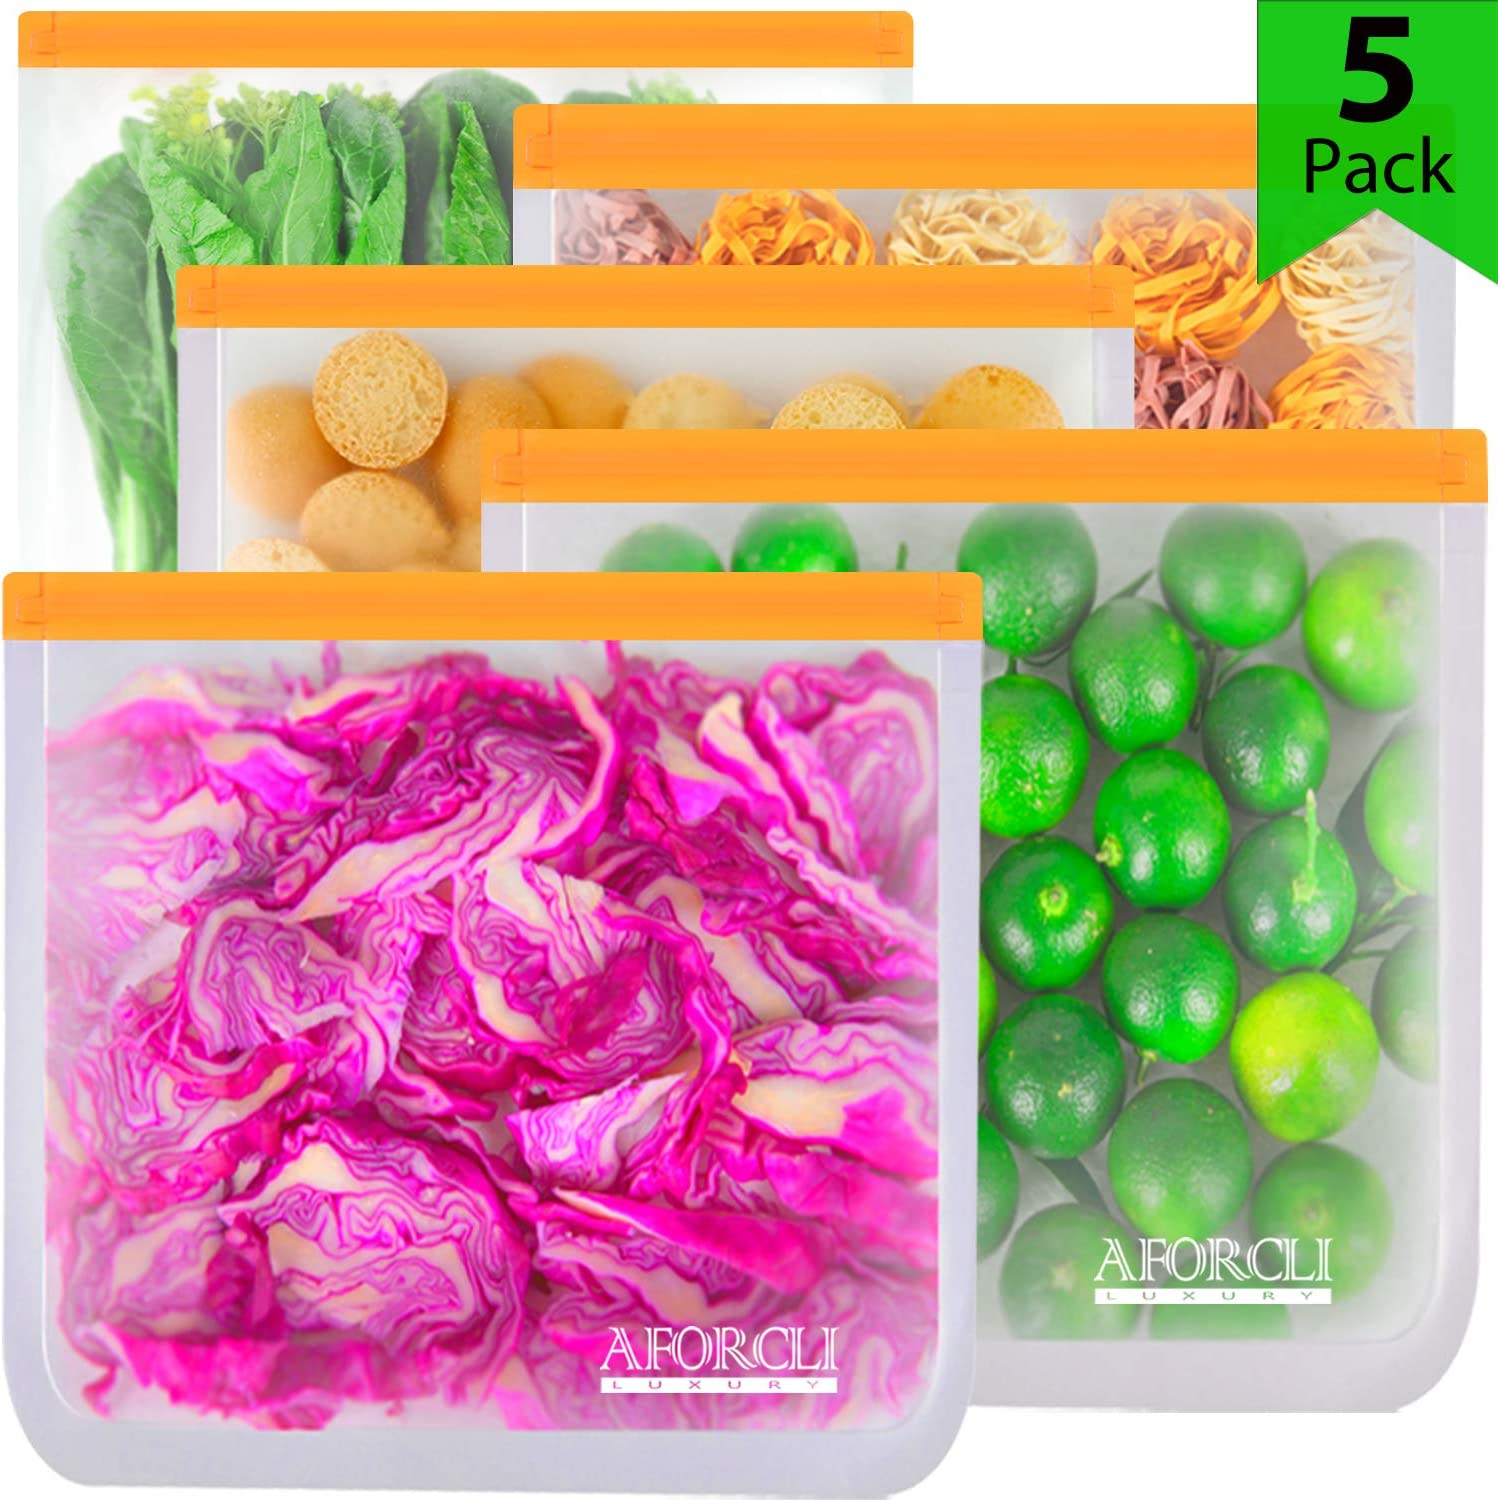 "Eco-Aforcli Reusable Gallon Storage Ziplock Bags | MORE DURABLE with BORDER 0.4"" -